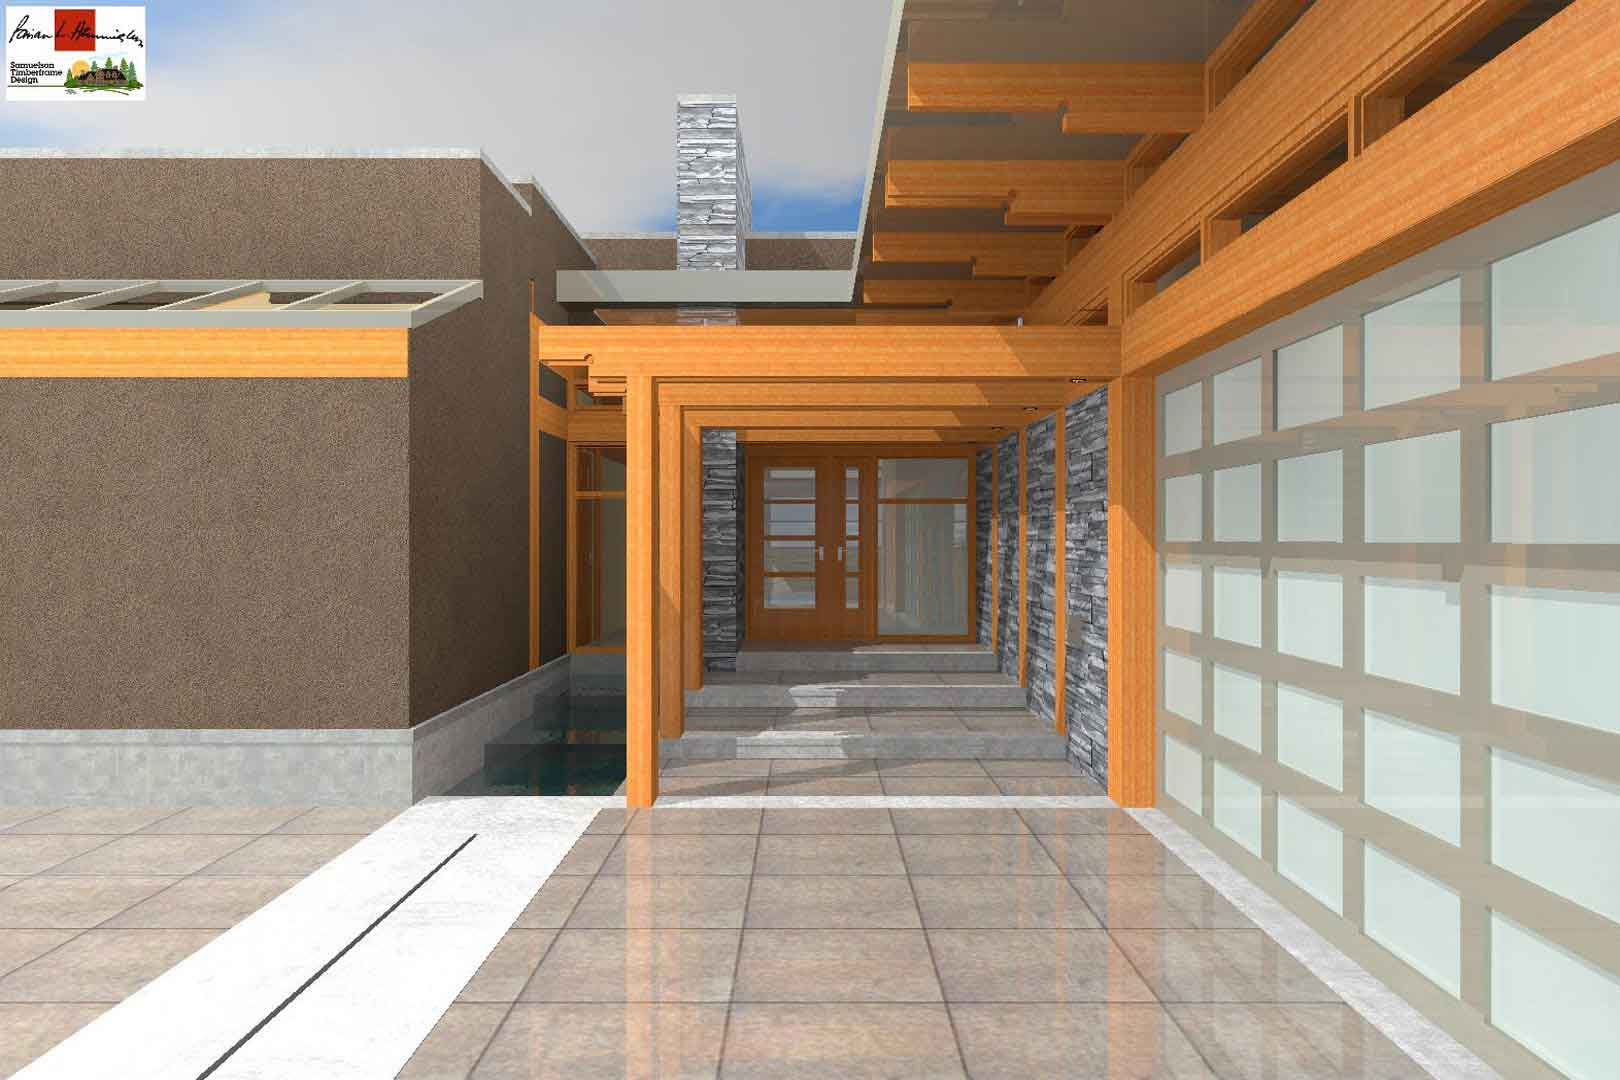 Brian Hemingway West Coast Contemporary Architect Samuelson Timberframe Design 3D Rendering